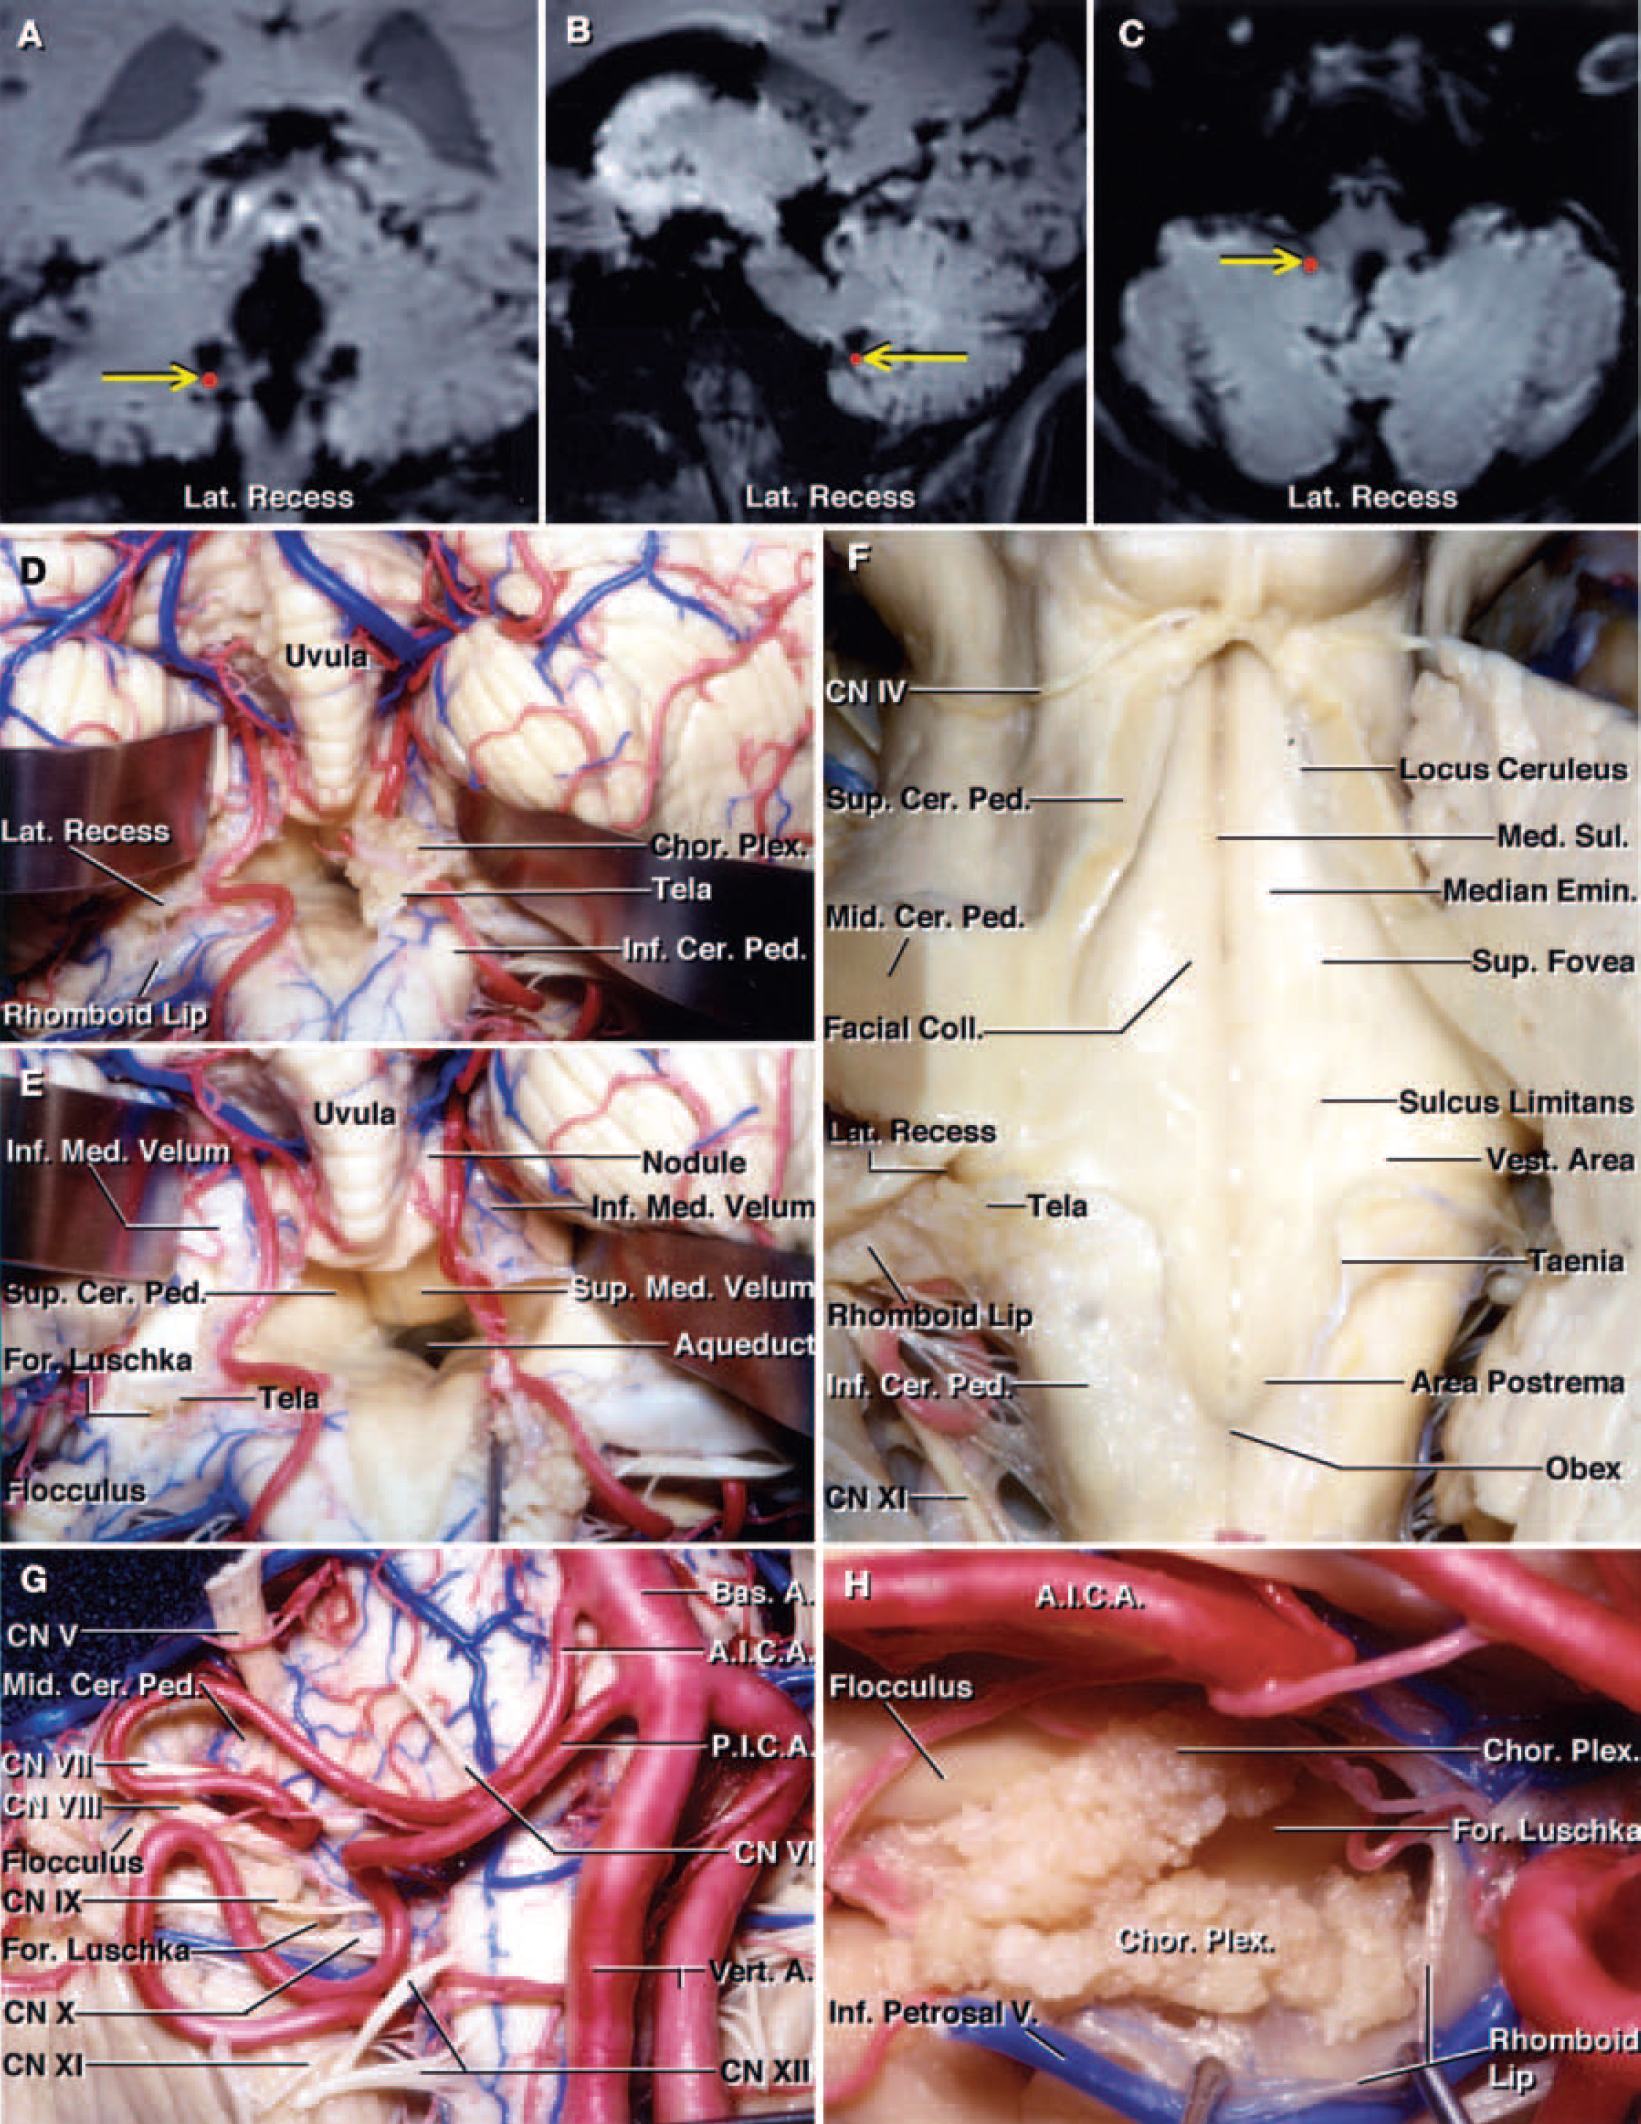 FIG. 4. A–C: Coronal (A), sagittal (B), and axial (C) MR images of a cadaveric head obtained from the Stealth workstation, demonstrating the lateral recess (red dotsindicated byyellow arrows). The point marked on all three images is identical and was obtained from the same cadaver. D and E: Photographs of another cadaveric specimen showning the stepwise dissection of the suboccipital surface of the cerebellum. Both tonsils have been retracted superolaterally and the left half of the tela choroidea has been opened (D). The choroid plexus projects from the ventricular surface of the tela choroidea into the fourth ventricle. The tela choroidea extends laterally over the inferior cerebellar peduncles and forms the posterior wall of the lateral recesses. View of structures shown in panel D (E). The tela choroidea has been retracted to the right side to expose the entire floor of the fourth ventricle and the aqueduct. The fourth ventricle is continuous with the cerebellopontine angle through the foramen of Luschka at the lateral recess. The superior half of the roof is formed medially by the superior medullary velum and laterally by the inner surfaces of the superior cerebellar peduncles. The inferior medullary velum blends into the peduncles of the flocculus laterally and the surface of the nodule medially. F: The left cerebellar hemisphere, the vermis, and the medial portion of the right cerebellar hemisphere have been removed to expose the full length of the floor of the fourth ventricle. The trochlear nerves arise inferior to the inferior colliculus. The superior and inferior cerebellar peduncles face the surface of the ventricle. The median sulcus divides the floor vertically in the midline. The sulcus limitans divides each half of the floor of the fourth ventricle longitudinally into a medial strip, the median eminence, and a lateral portion, the vestibular area. The sulcus limitans is most prominent at the level of two dimples, the superior and inferior fovea. The 